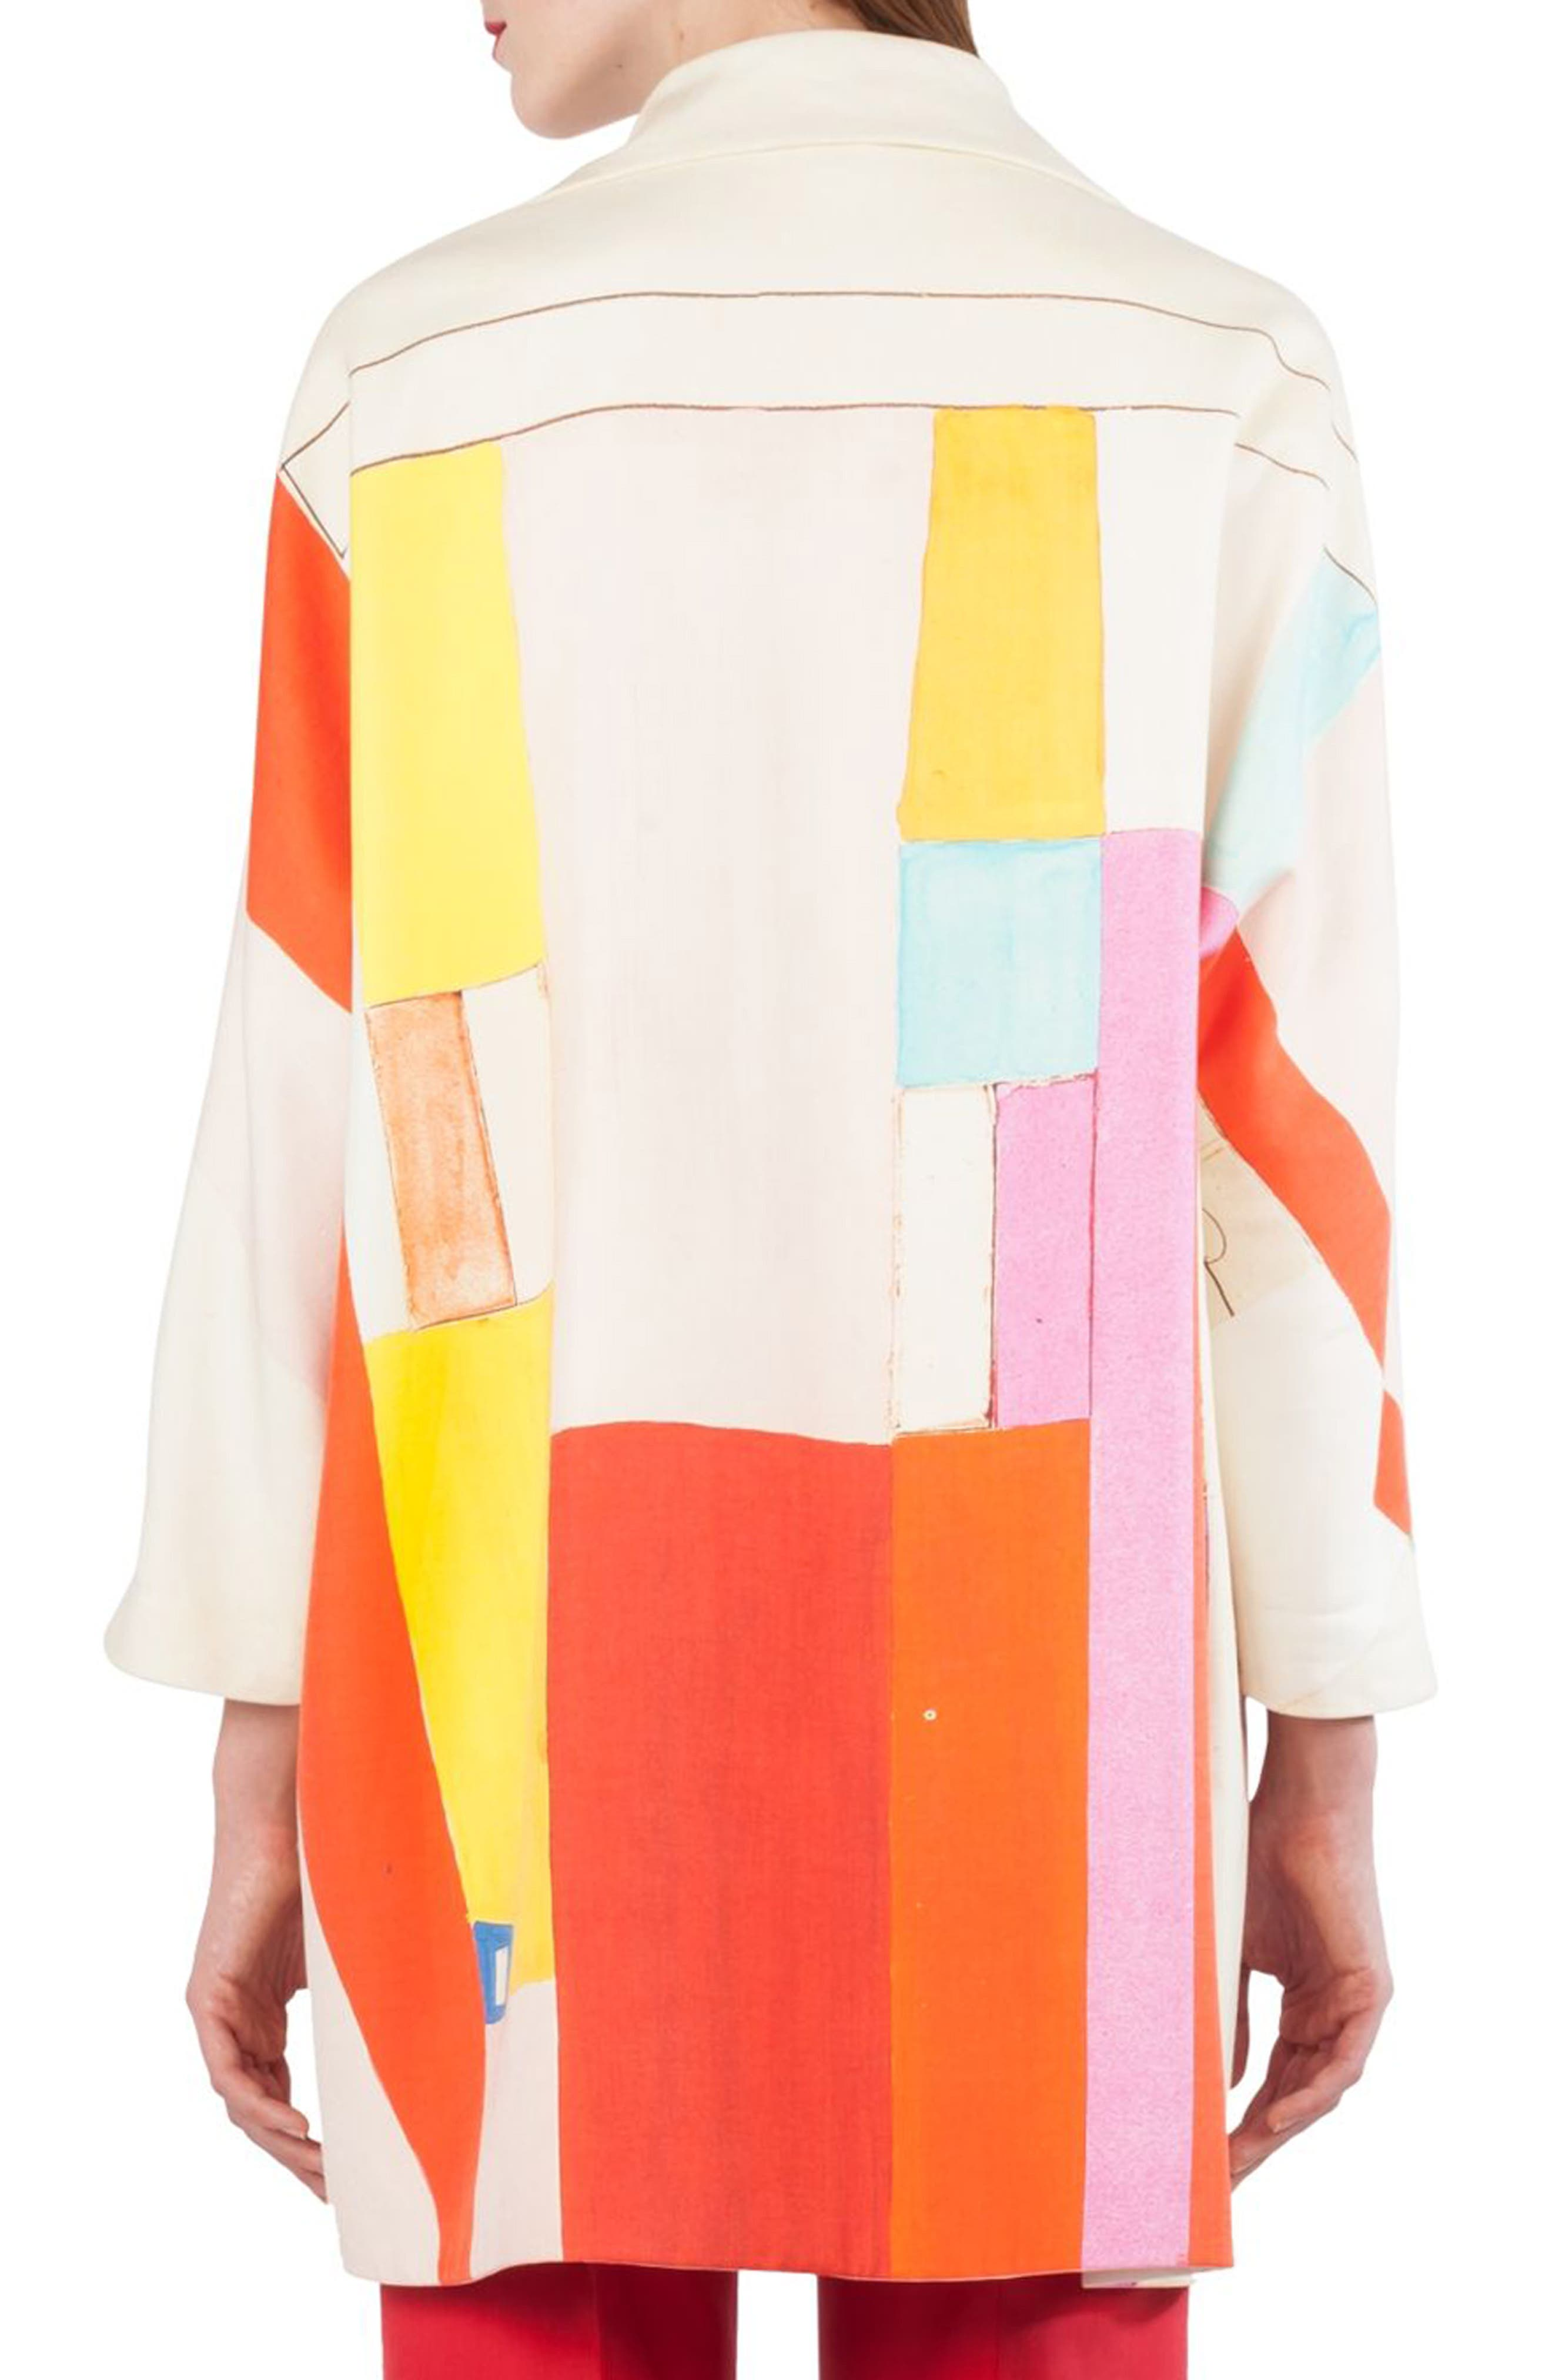 Mural Print Cotton & Silk Reversible Coat,                             Alternate thumbnail 4, color,                             Multicolor